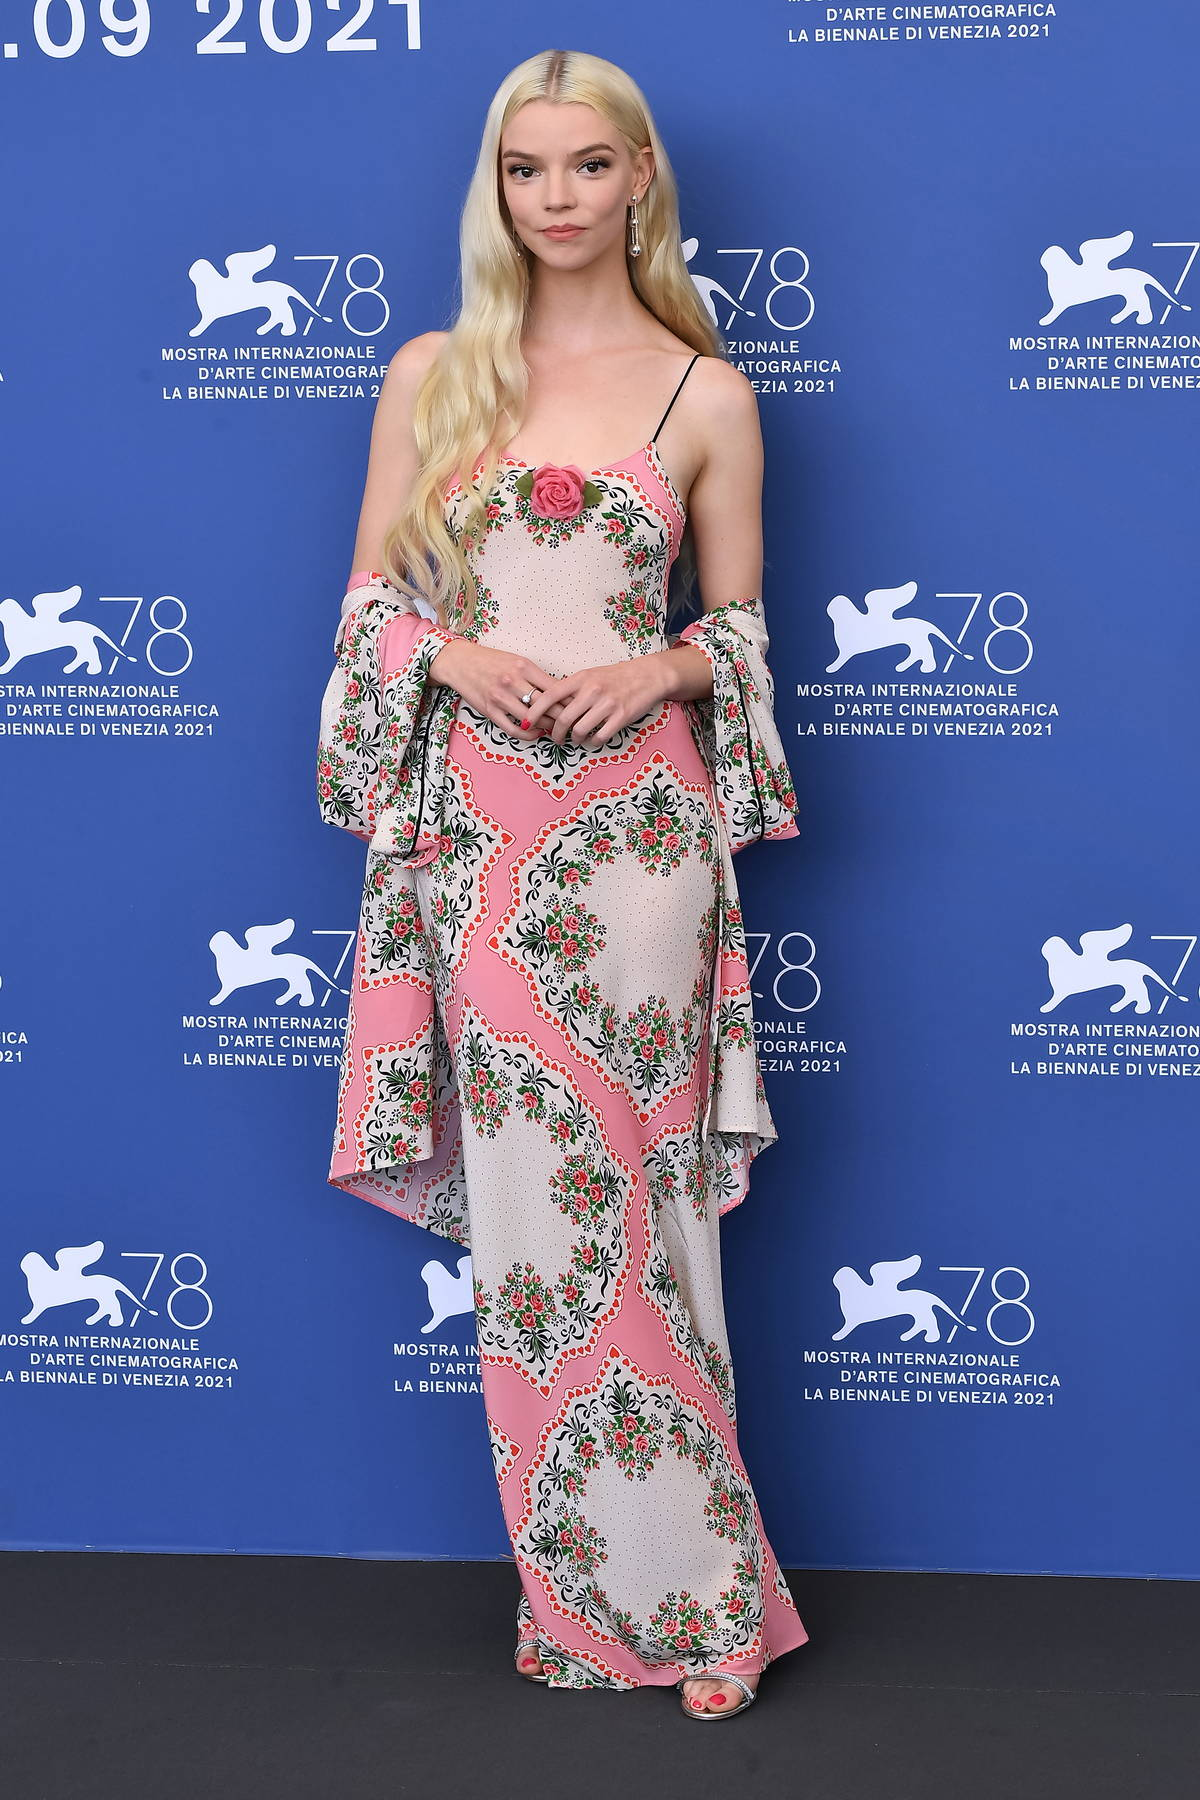 Anya Taylor-Joy attends the photocall of 'Last Night In Soho' during the 78th Venice International Film Festival in Venice, Italy